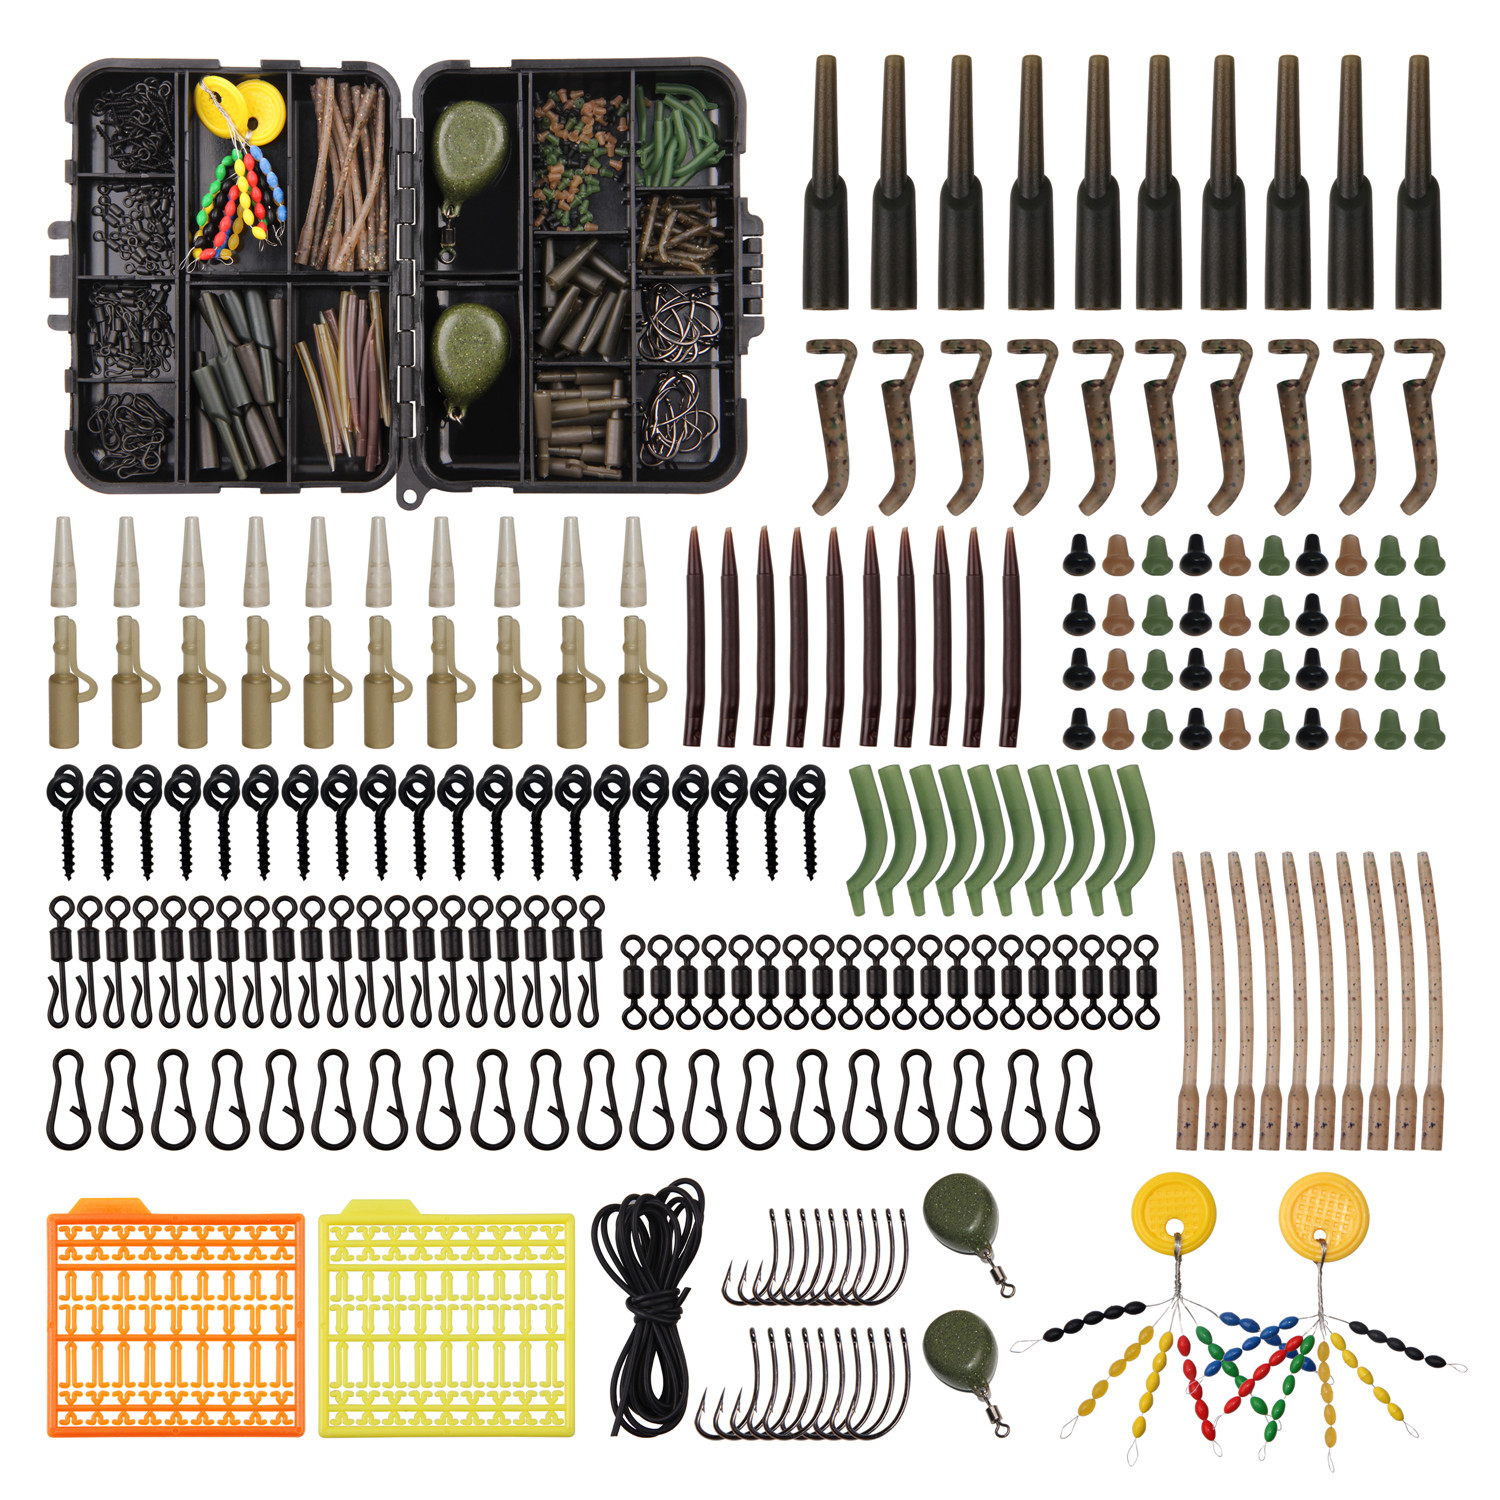 217pcs/box Carp Fishing Tackle Box Anti Tangle Sleeve Line Aligner Bait Screw Stoper Carp Hook Carp Lead Sinker For Carp Bait